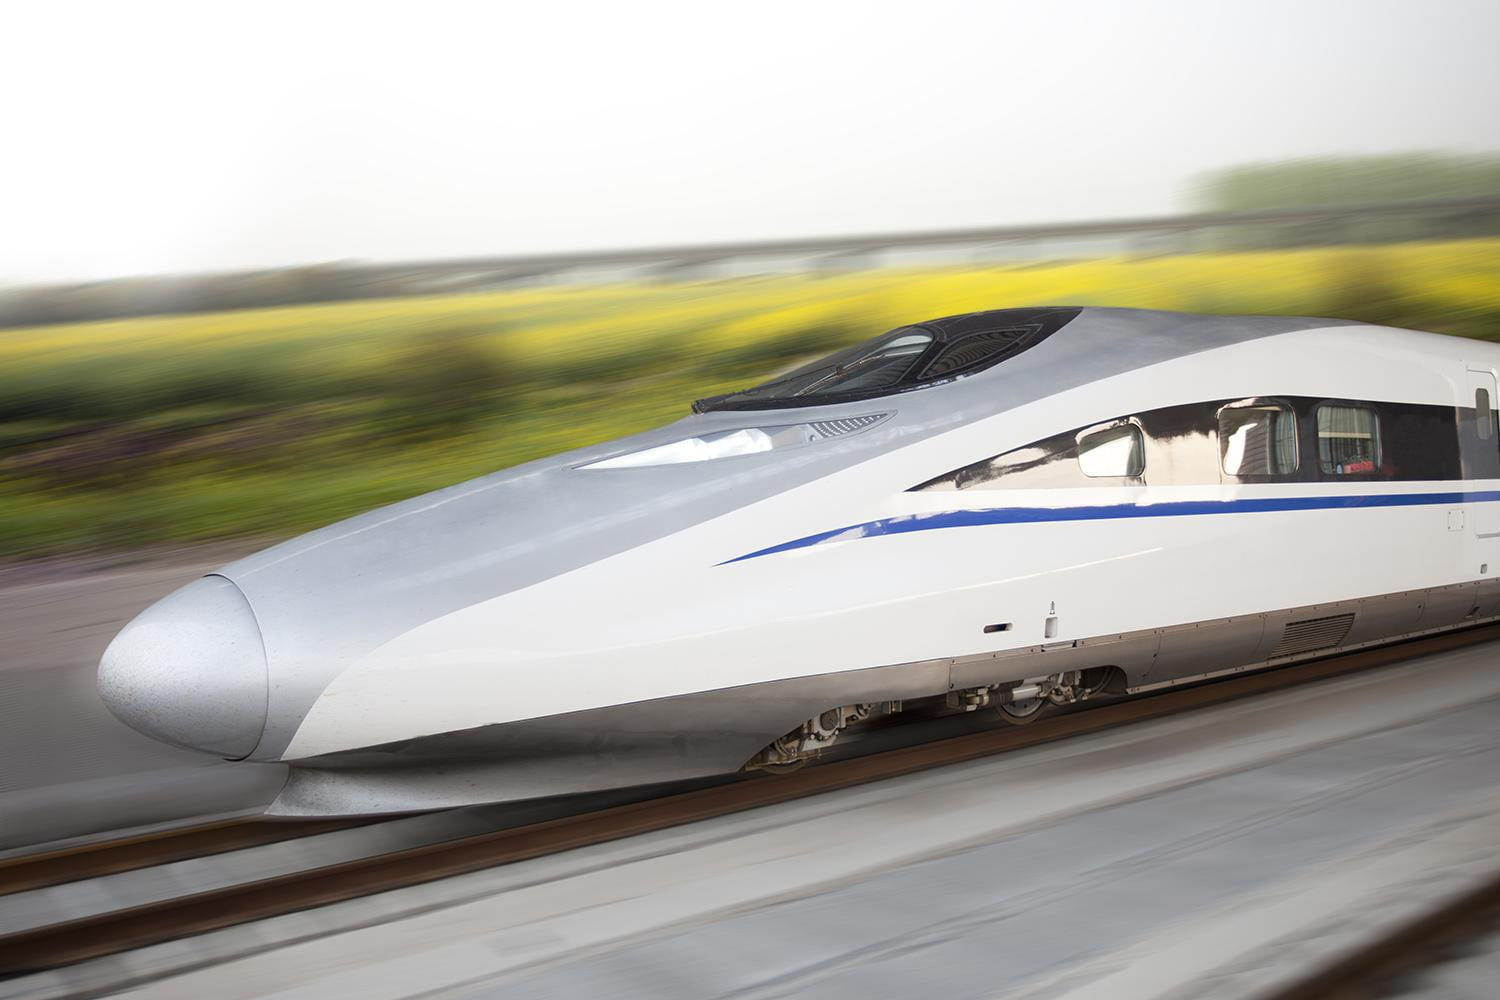 Traveling Beyond 200 MPH on World's Fastest Trains ...